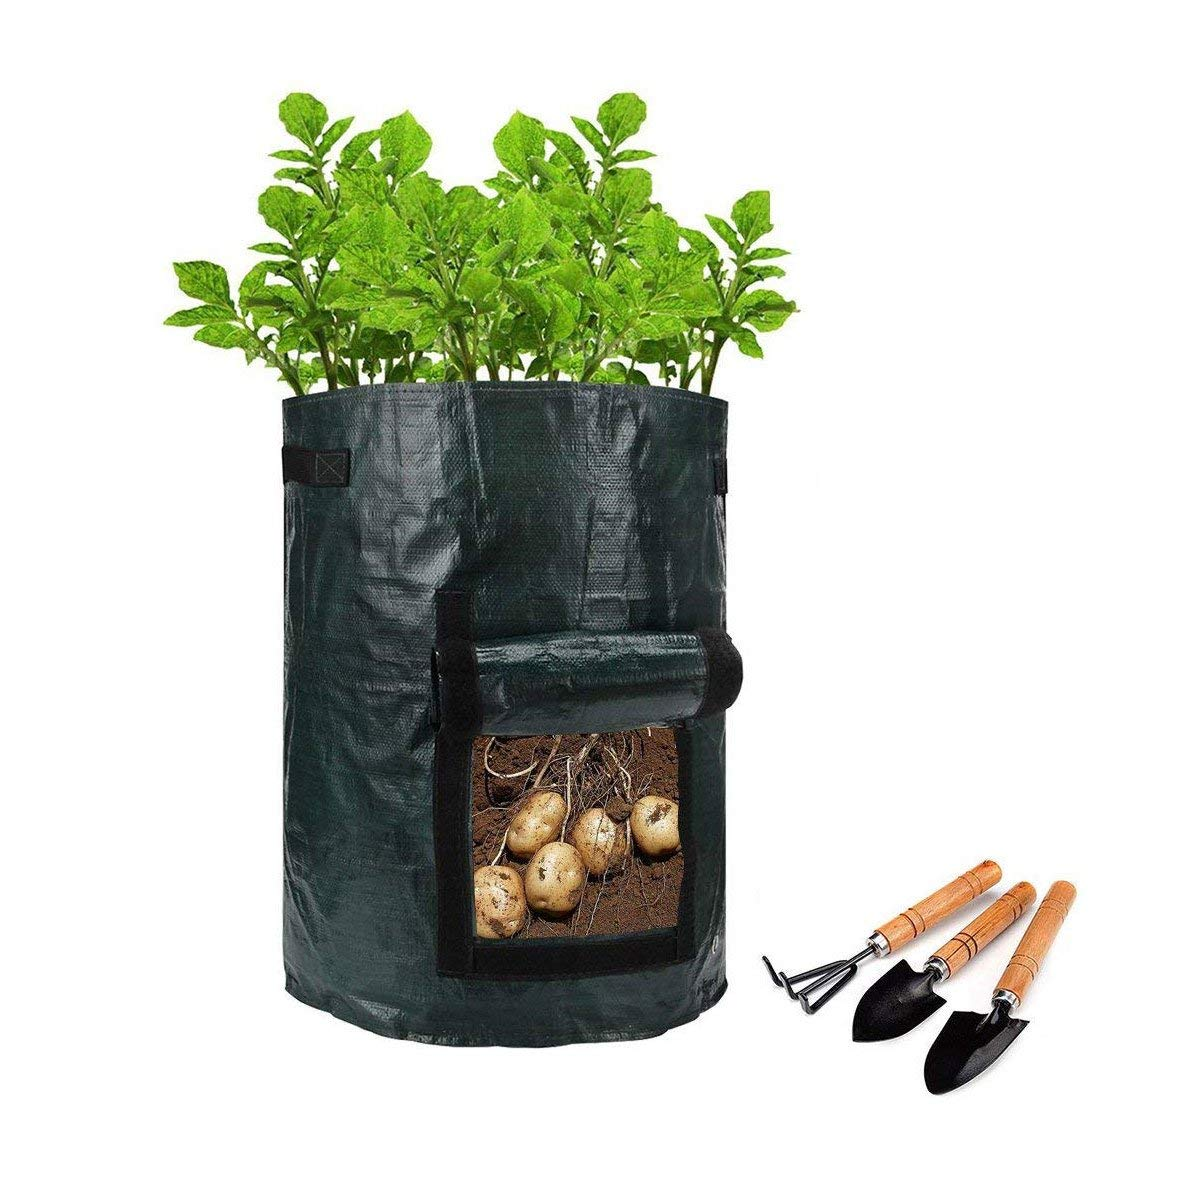 Garden Potato Grow Bag , 4-Pack 7 Gallon Vegetables Plant Grow Bags,Planting for Potato, Carrot, Vegetables Flower Plant